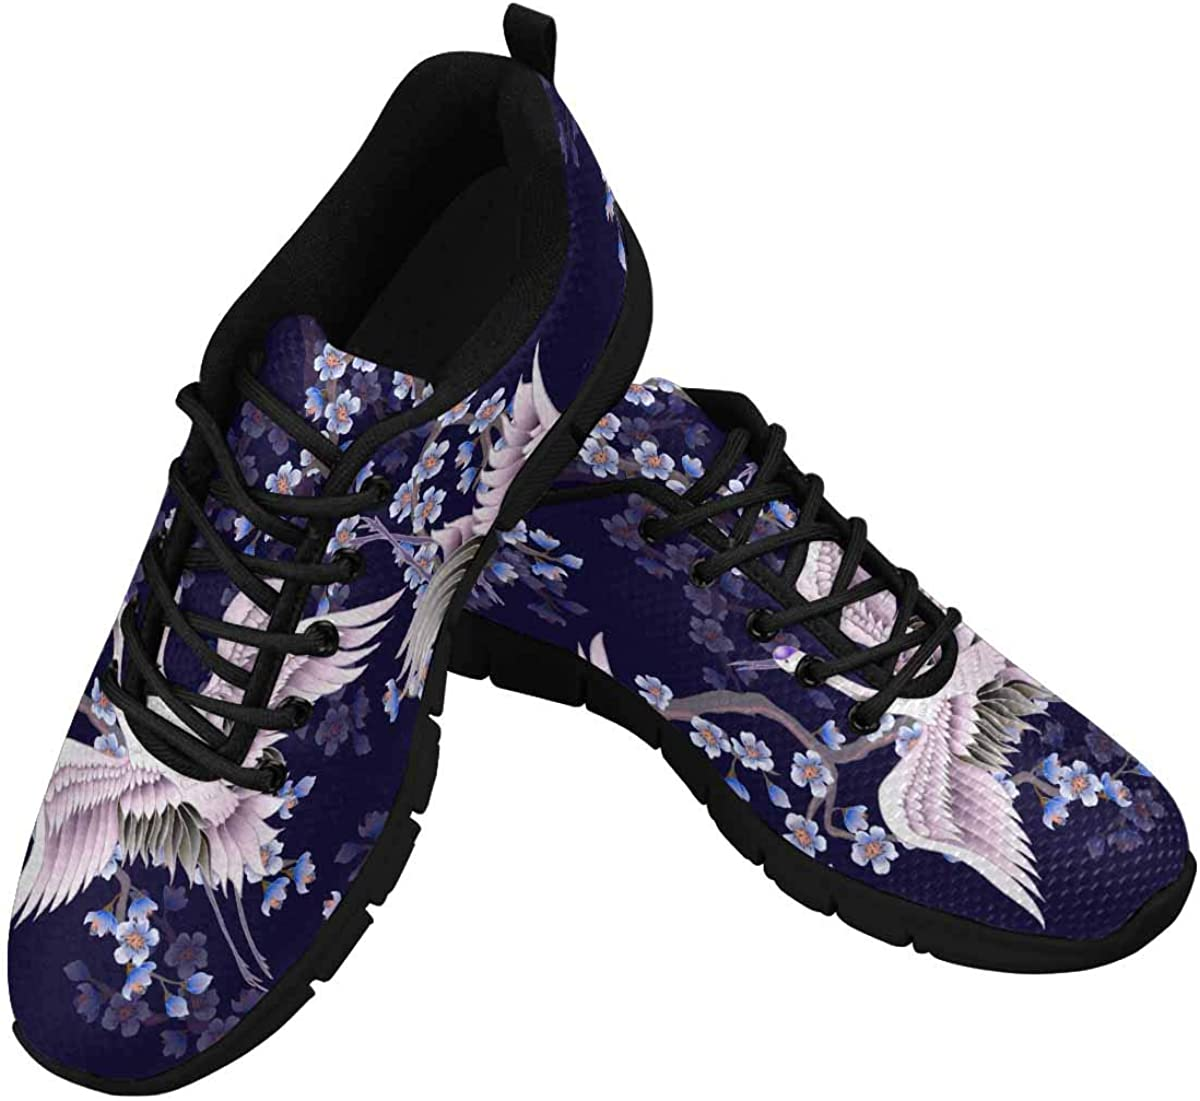 INTERESTPRINT Cherry Blossoms Branches and Cranes Women's Athletic Mesh Breathable Casual Sneaker